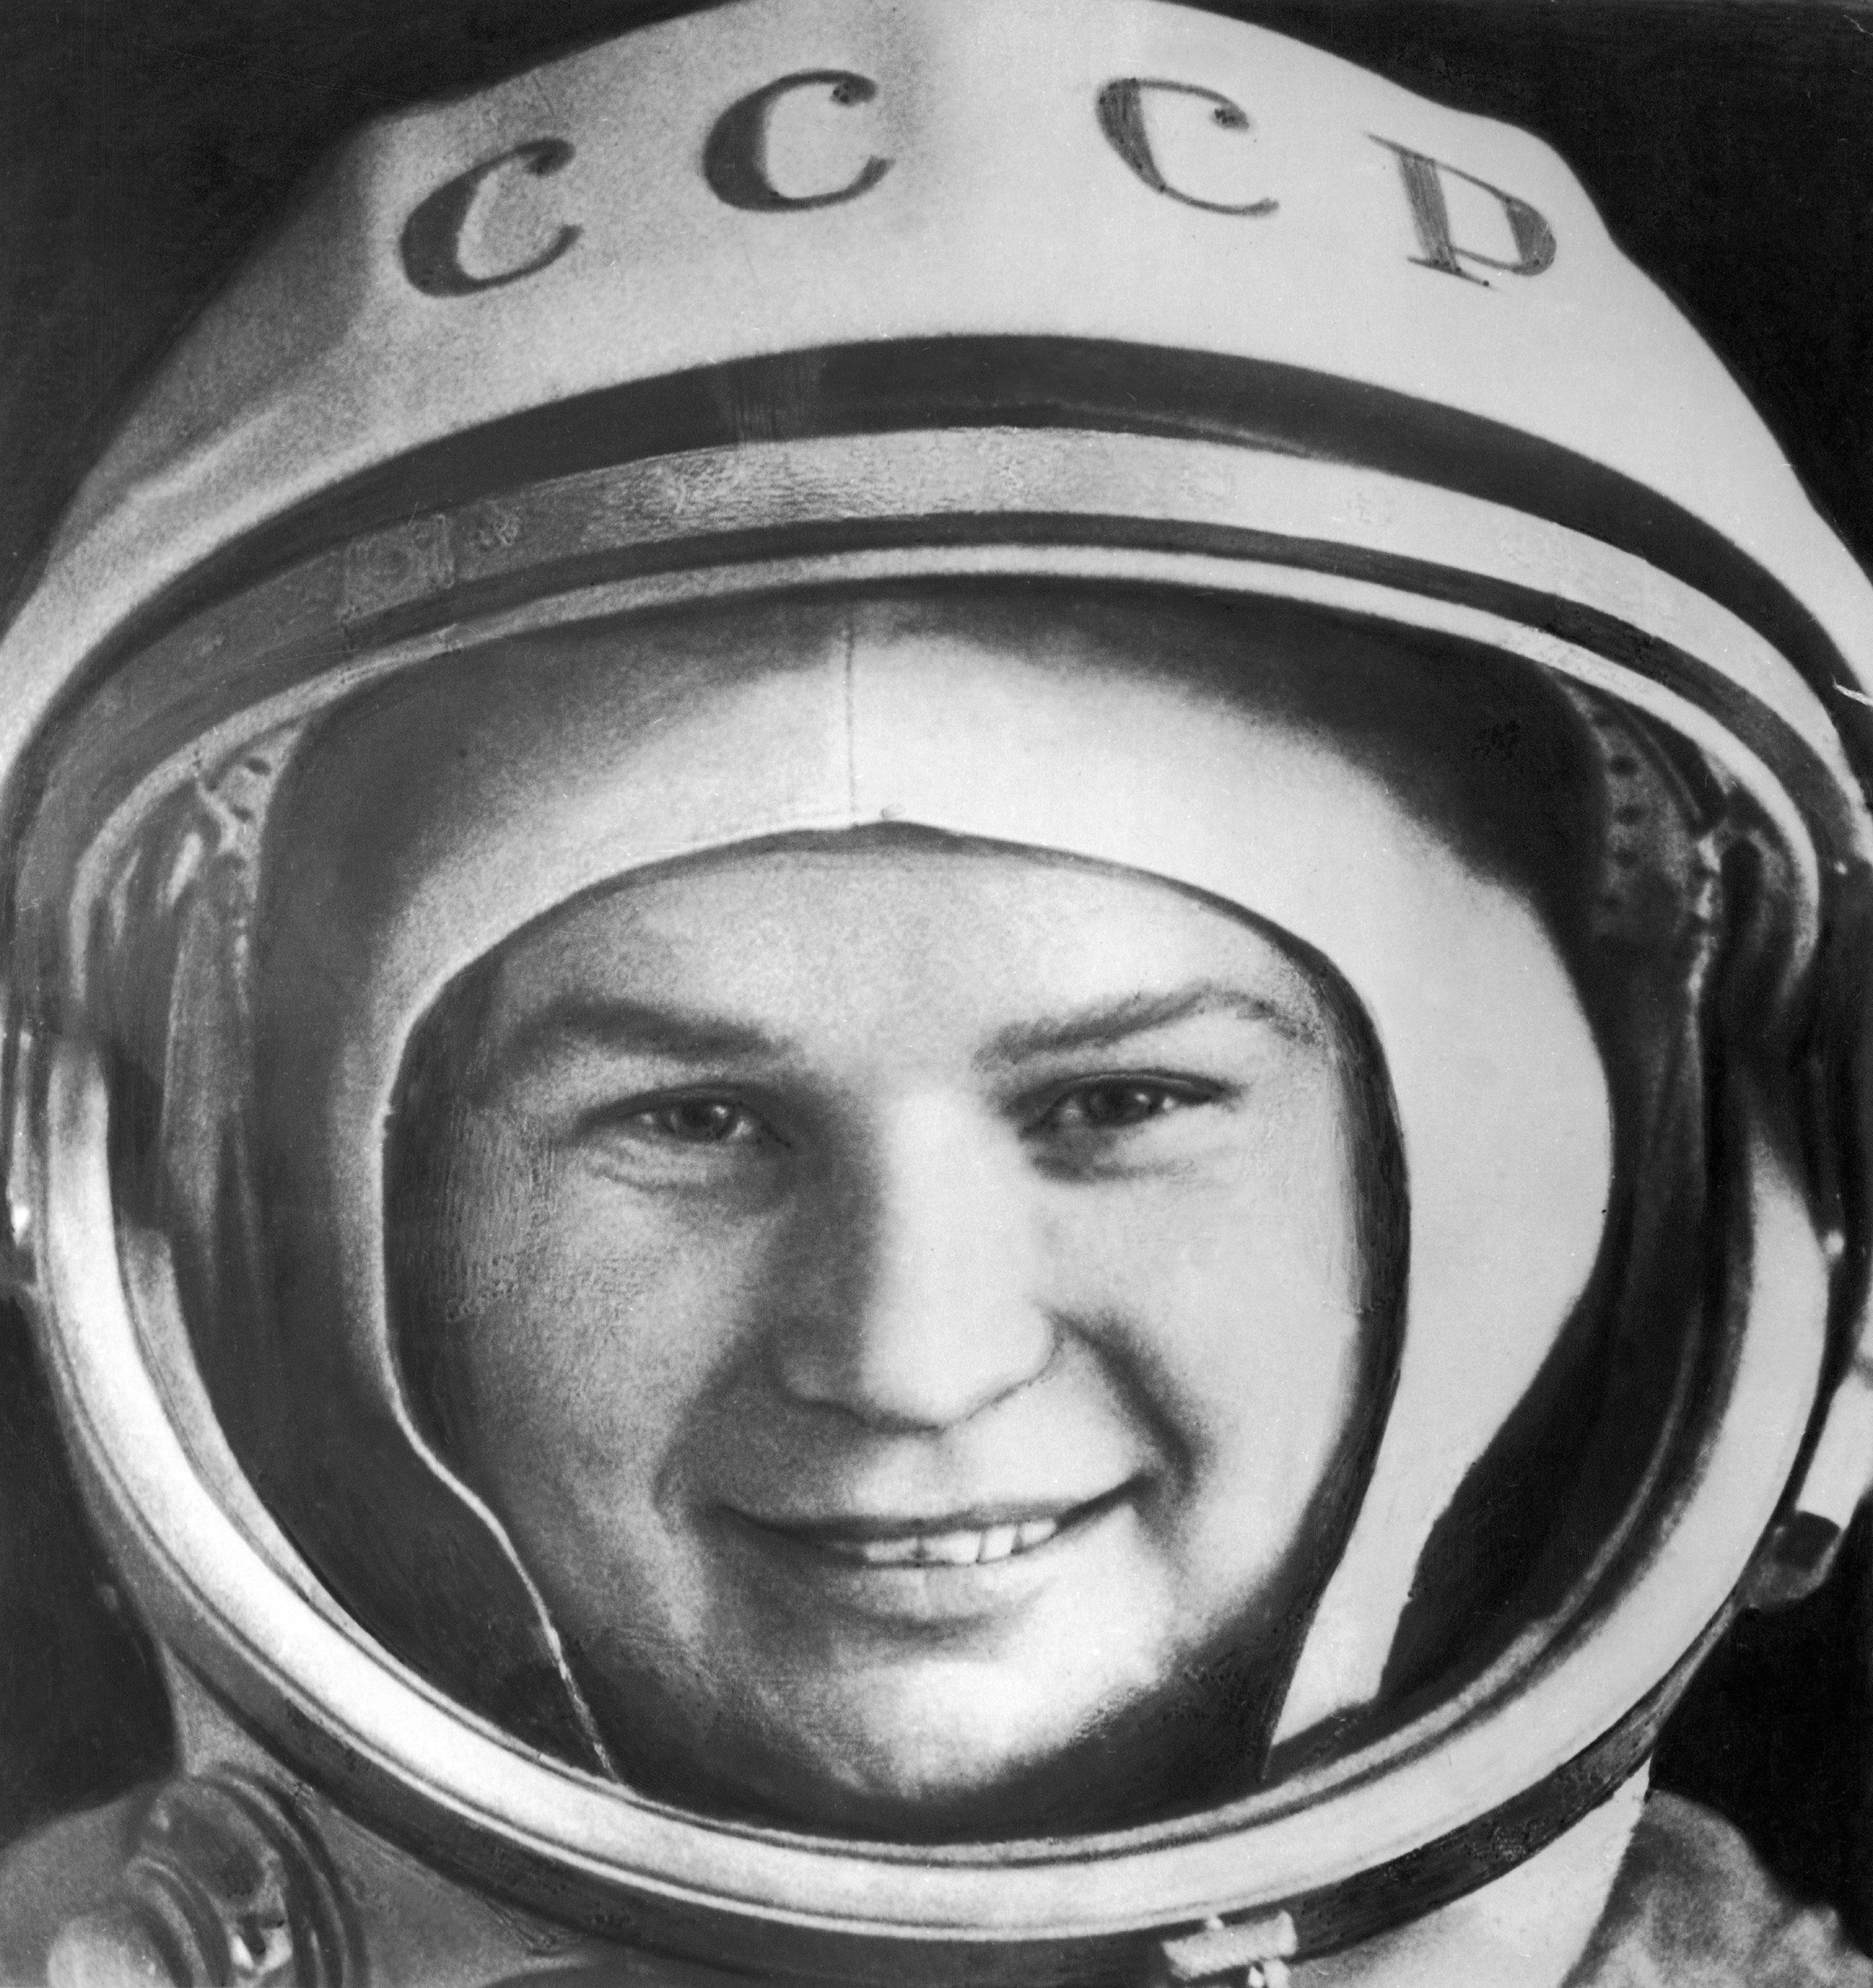 VALENTINA TERESHKOVA, the Soviet cosmonaut, became the first woman in space in 1963.